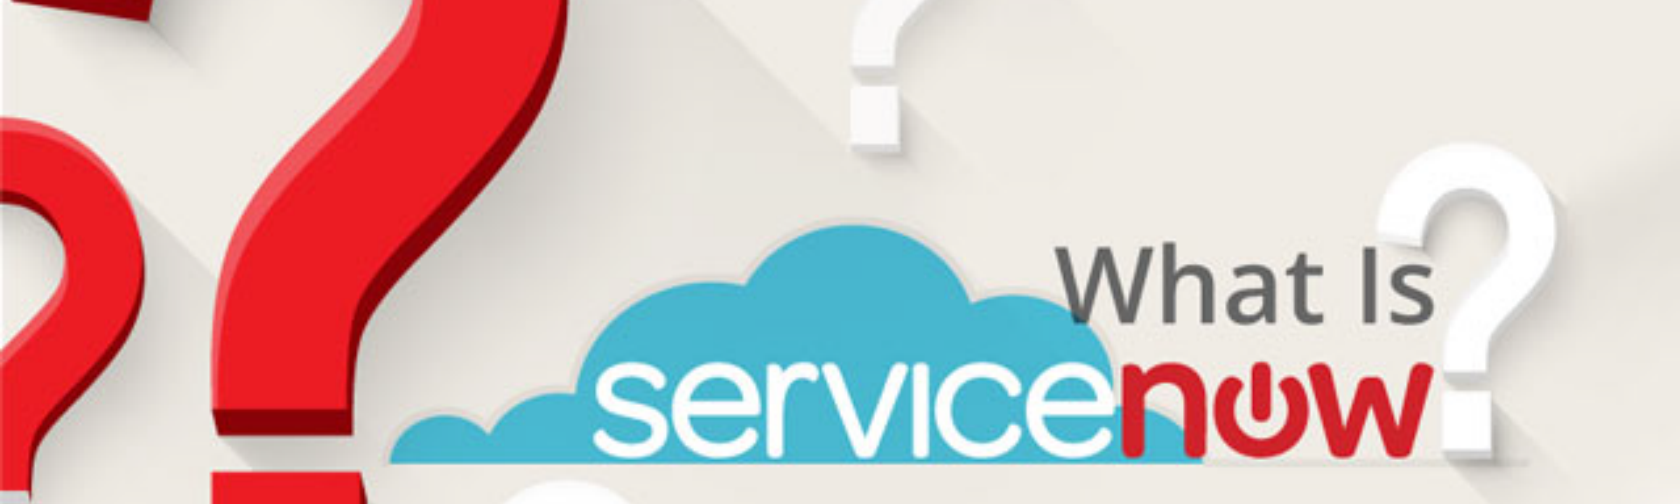 What is ServiceNow? - Getting Started with the ServiceNow Platform